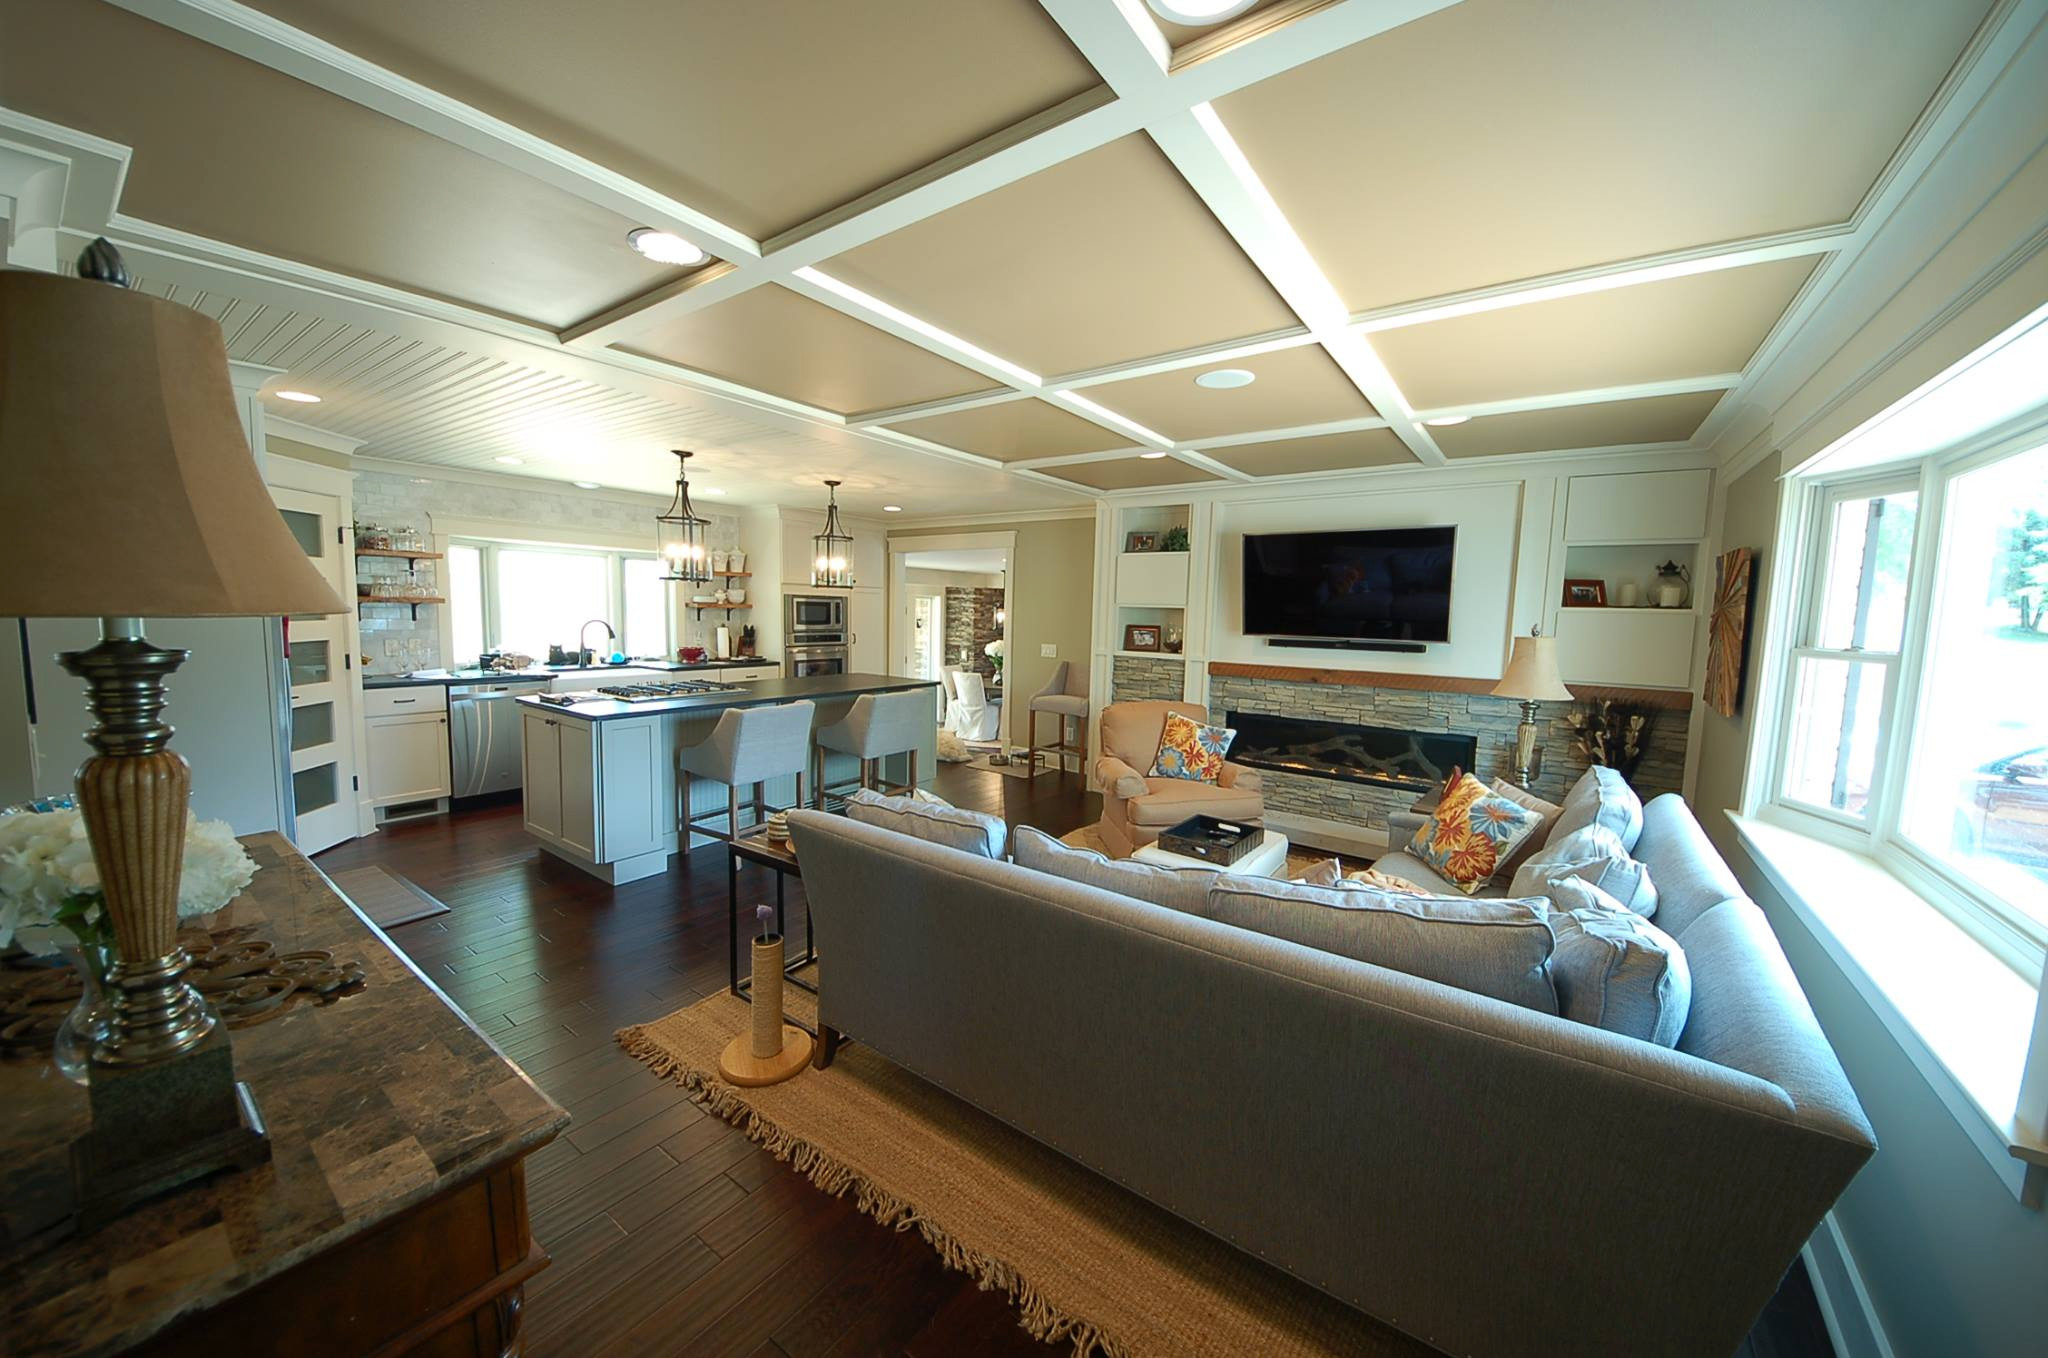 Sustainably Designed Remodels